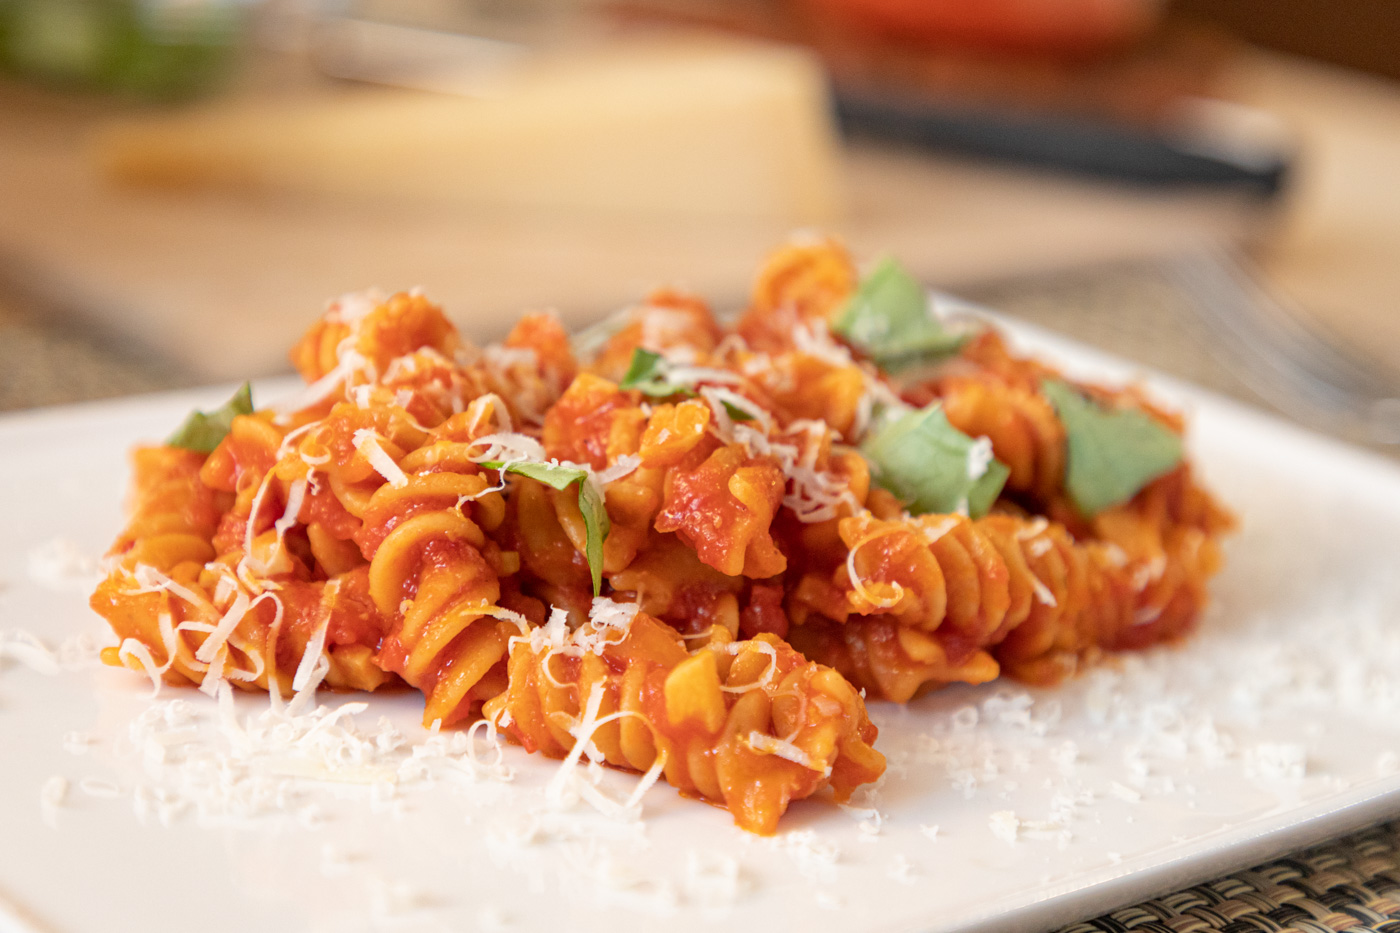 Pasta with Tomato Garlic Basil Sauce